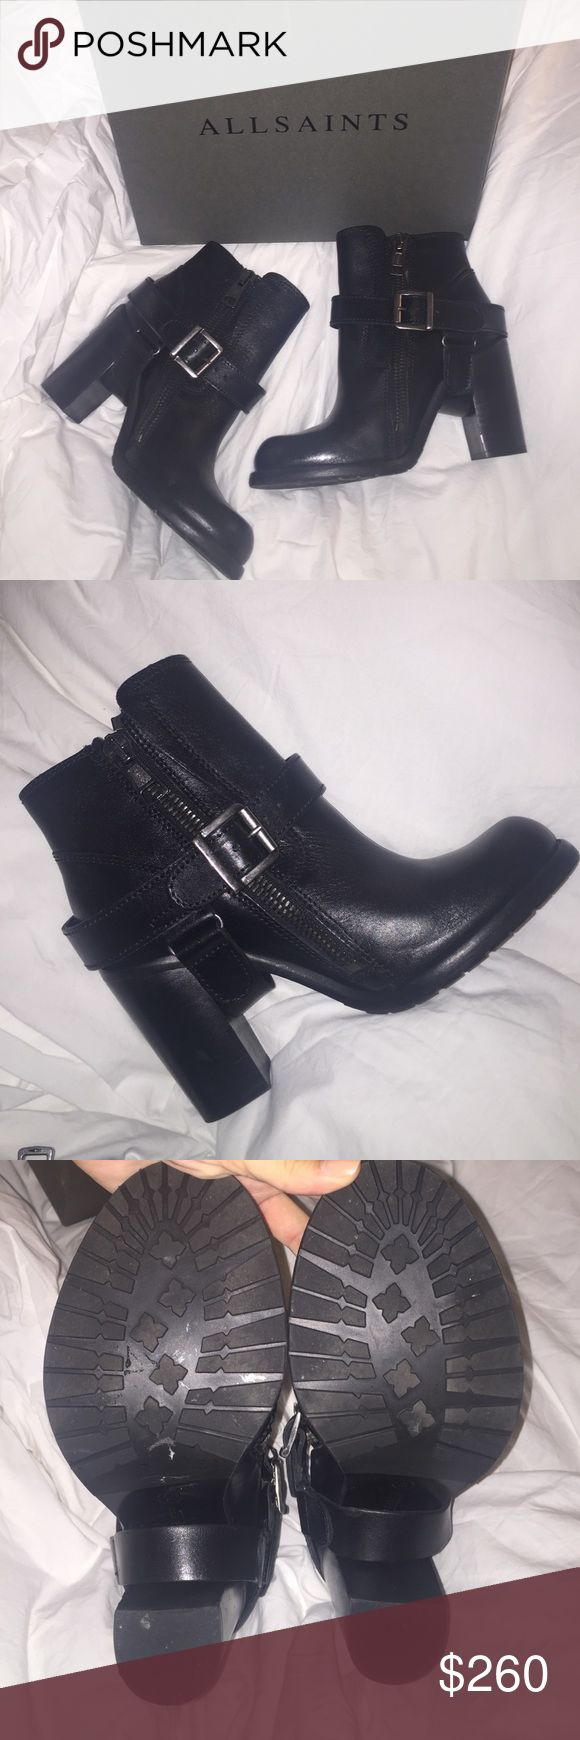 """ALL SAINTS Jules heeled boot BRAND NEW, never worn, ALL SAINTS leather heeled boots. I bought the display shoes since it was the last pair, so any marks on bottom was from being tried on. Originally $408, I bought the wrong size and don't have receipt to return them. About a 3.5"""" heel. Open to reasonable offers, super trendy boot which goes great with any type of outfit!💕 All Saints Shoes Ankle Boots & Booties"""